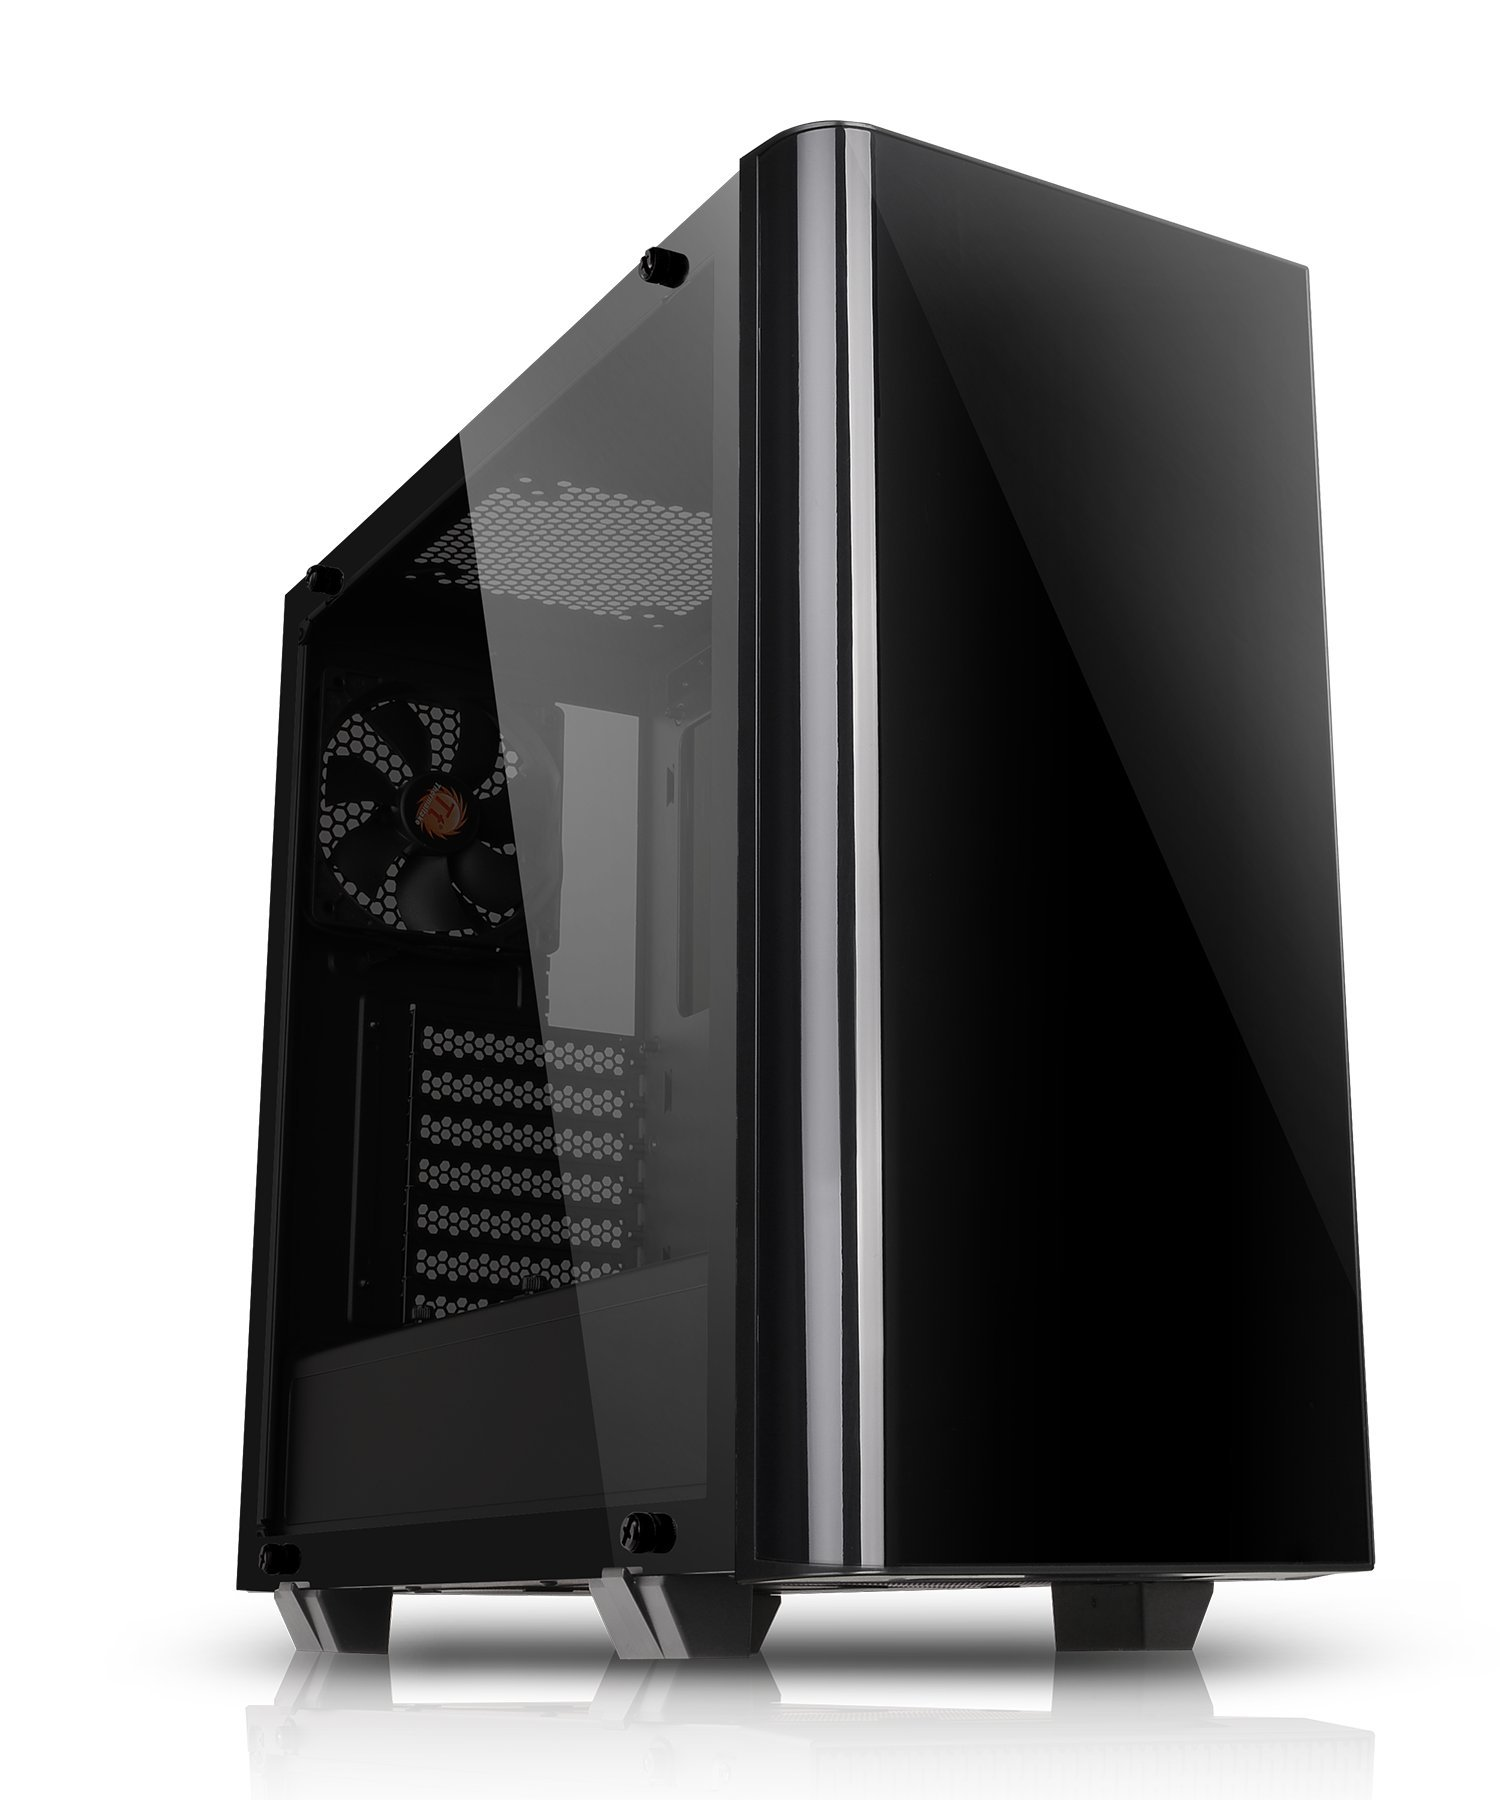 Thermaltake View 21 Dual Tempered Glass ATX Black Gaming Mid Tower Computer Case Chassis CA-1I3-00M1WN-00